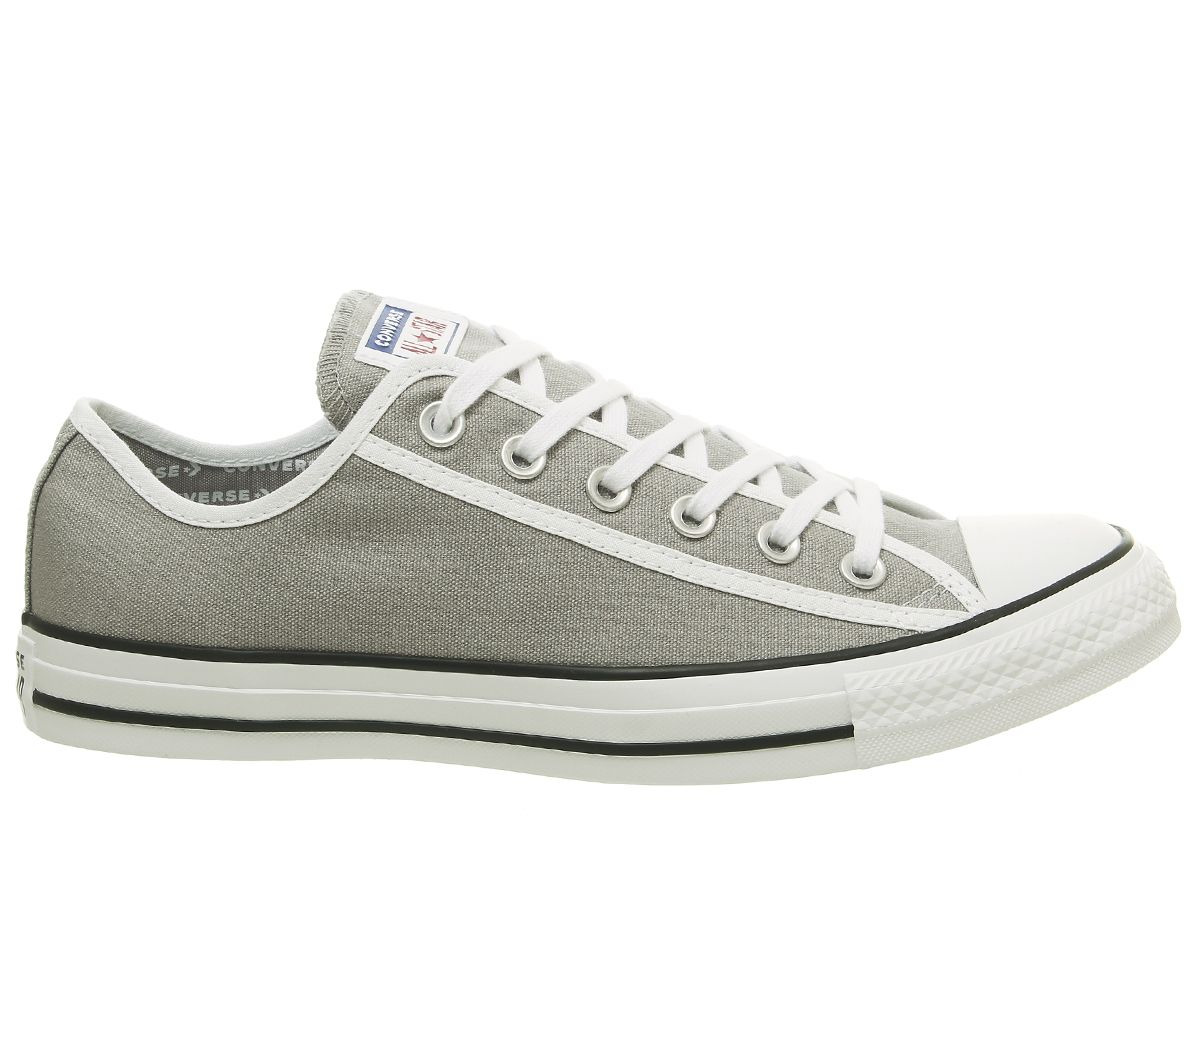 a6d2431f70ec3 SENTINELLE Converse Converse All Star basse formateurs Dolphin formateurs  blanc chaussures